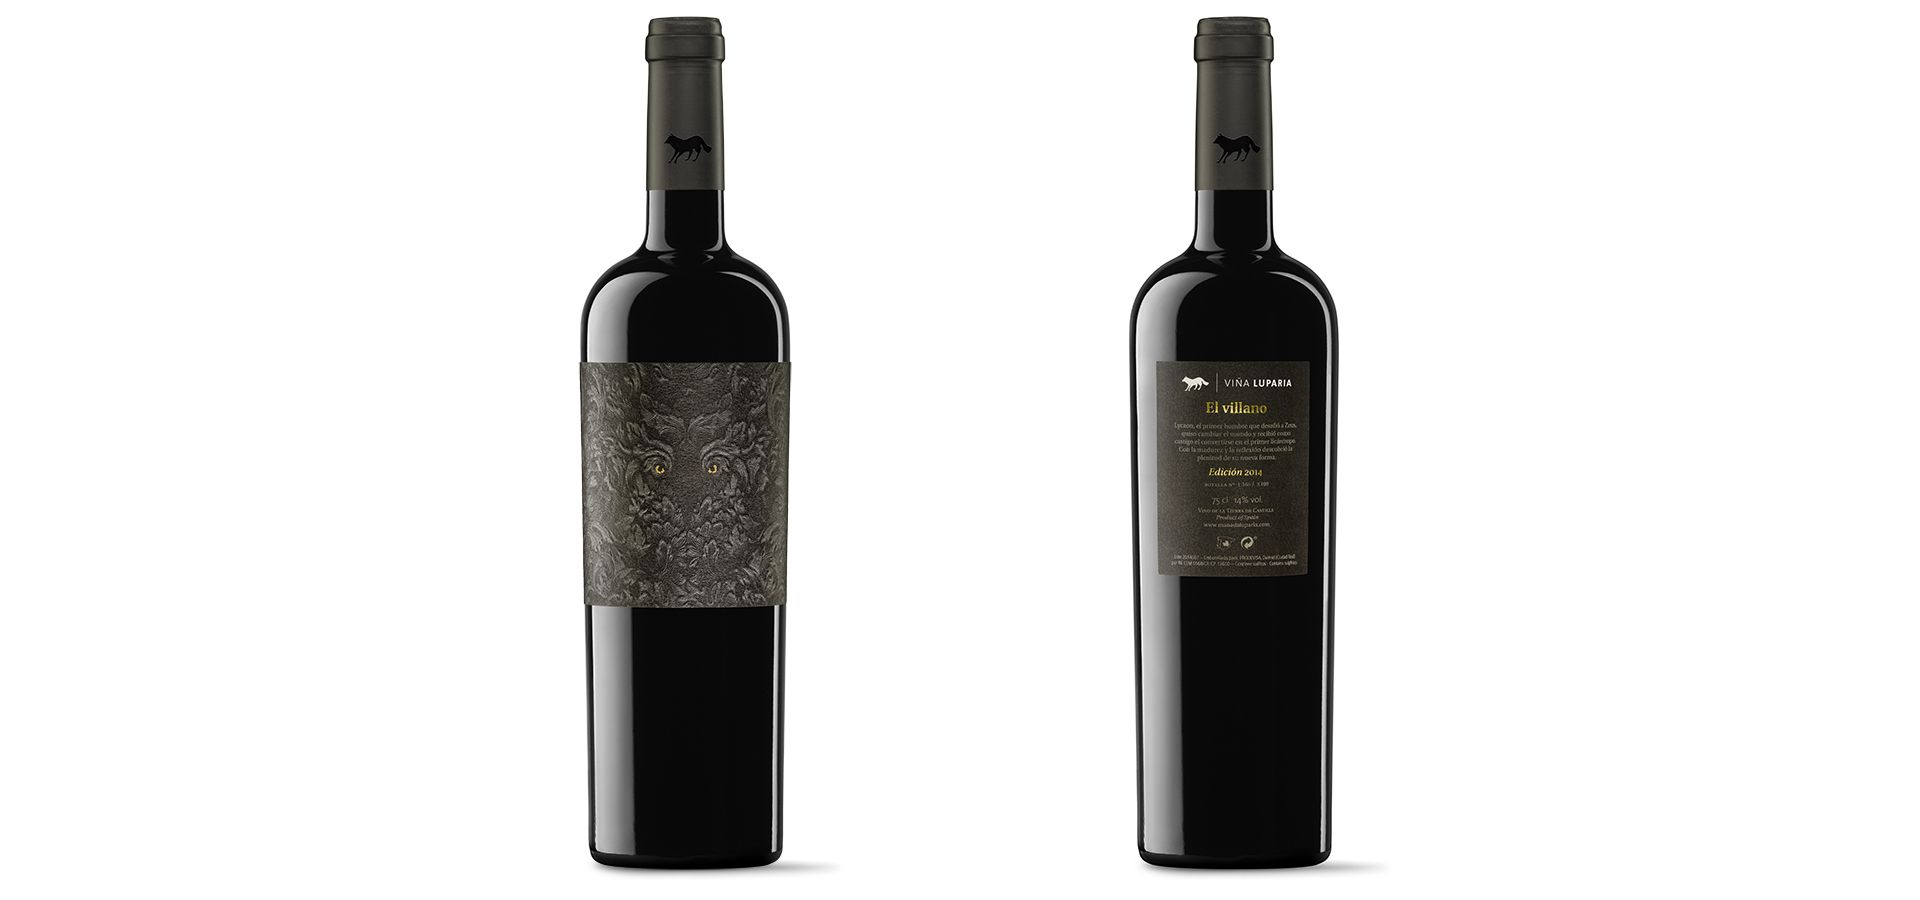 El villano. A label design and a packaging for the most exclusive wine of Manada Luparia | TSMGO Brand Consultants